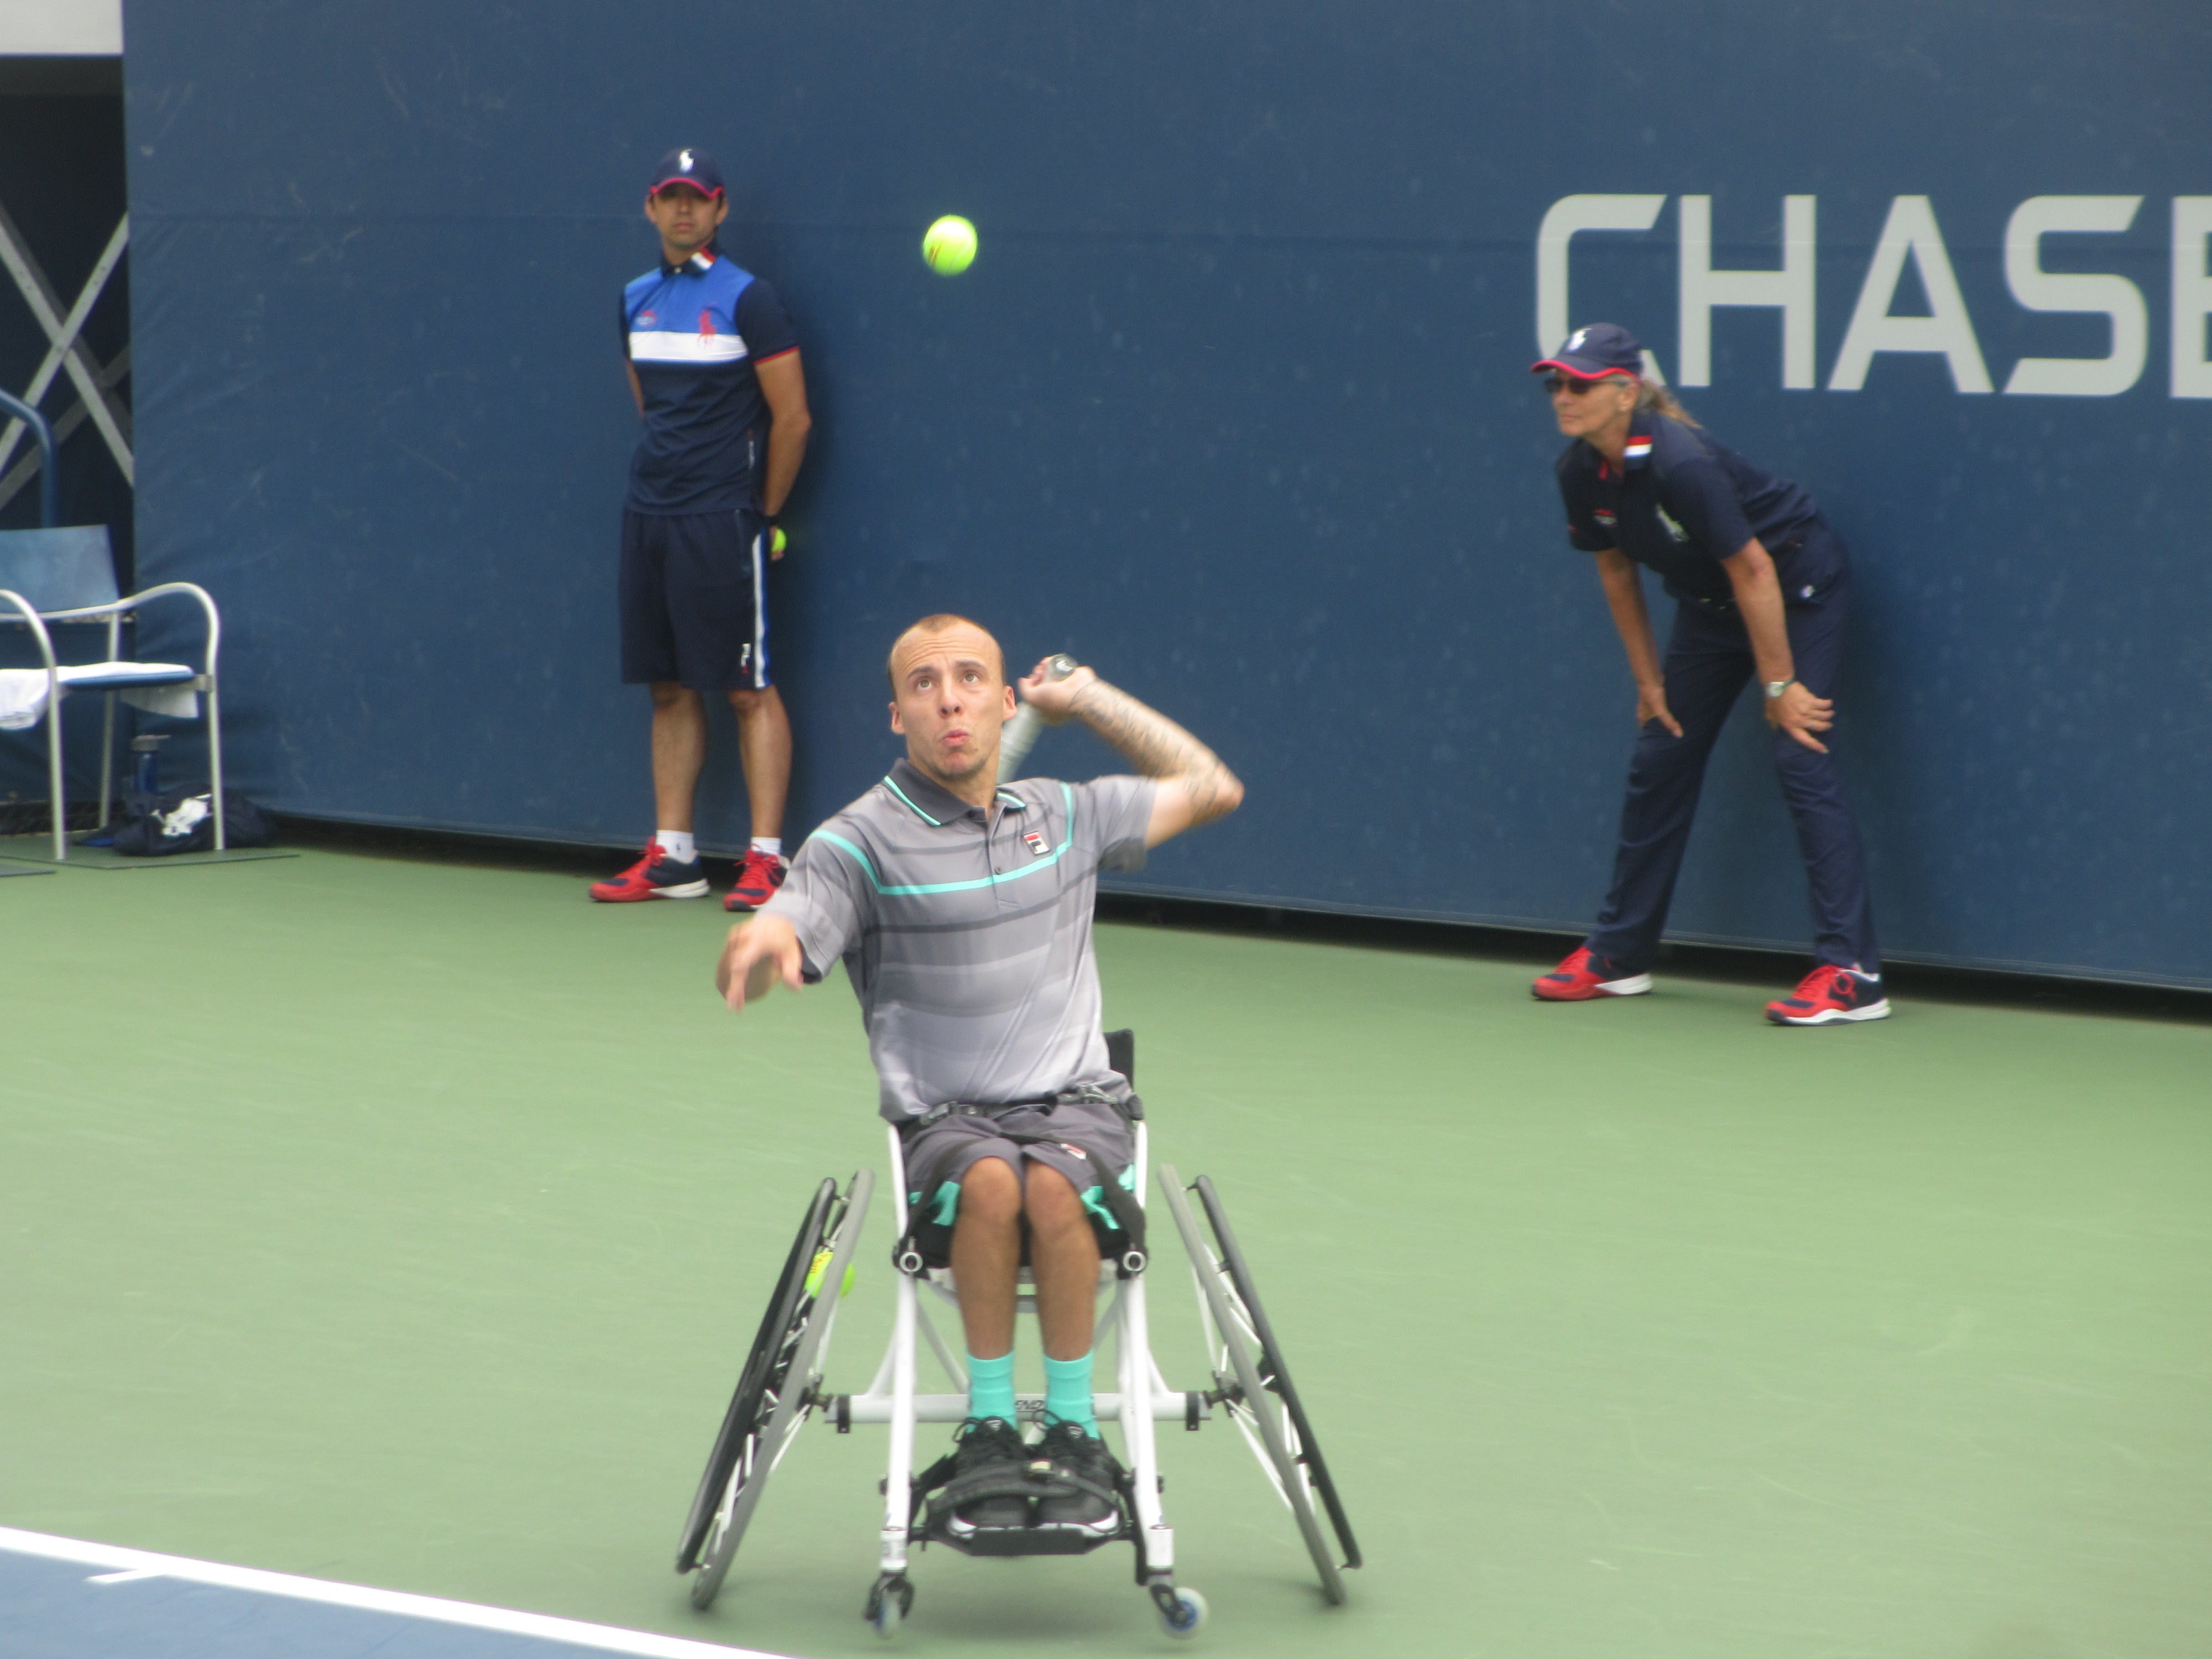 Wheelchair Tennis shows opportunity for inclusion in sports